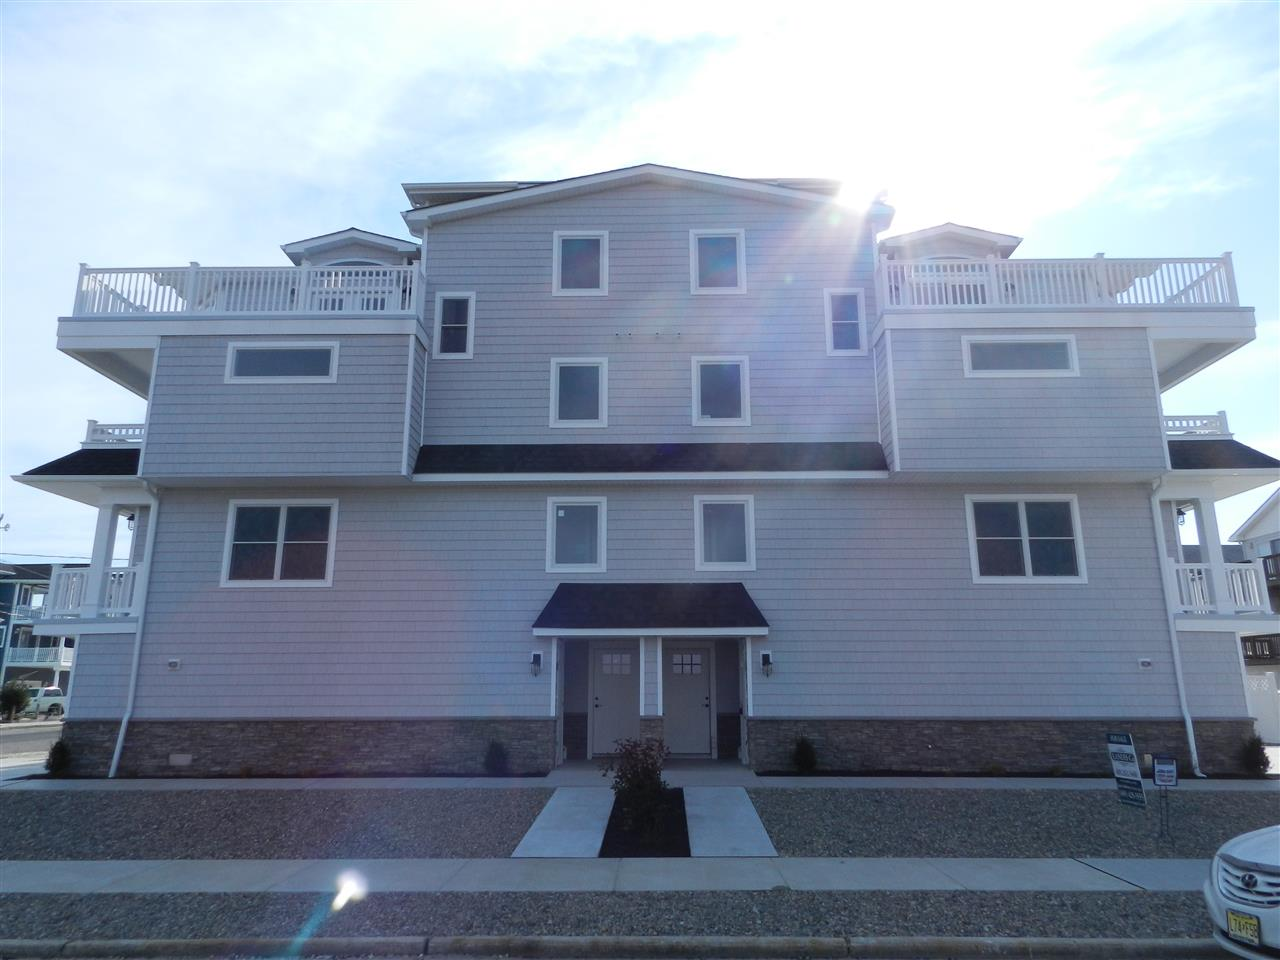 346, South Unit 39th Street, Sea Isle City